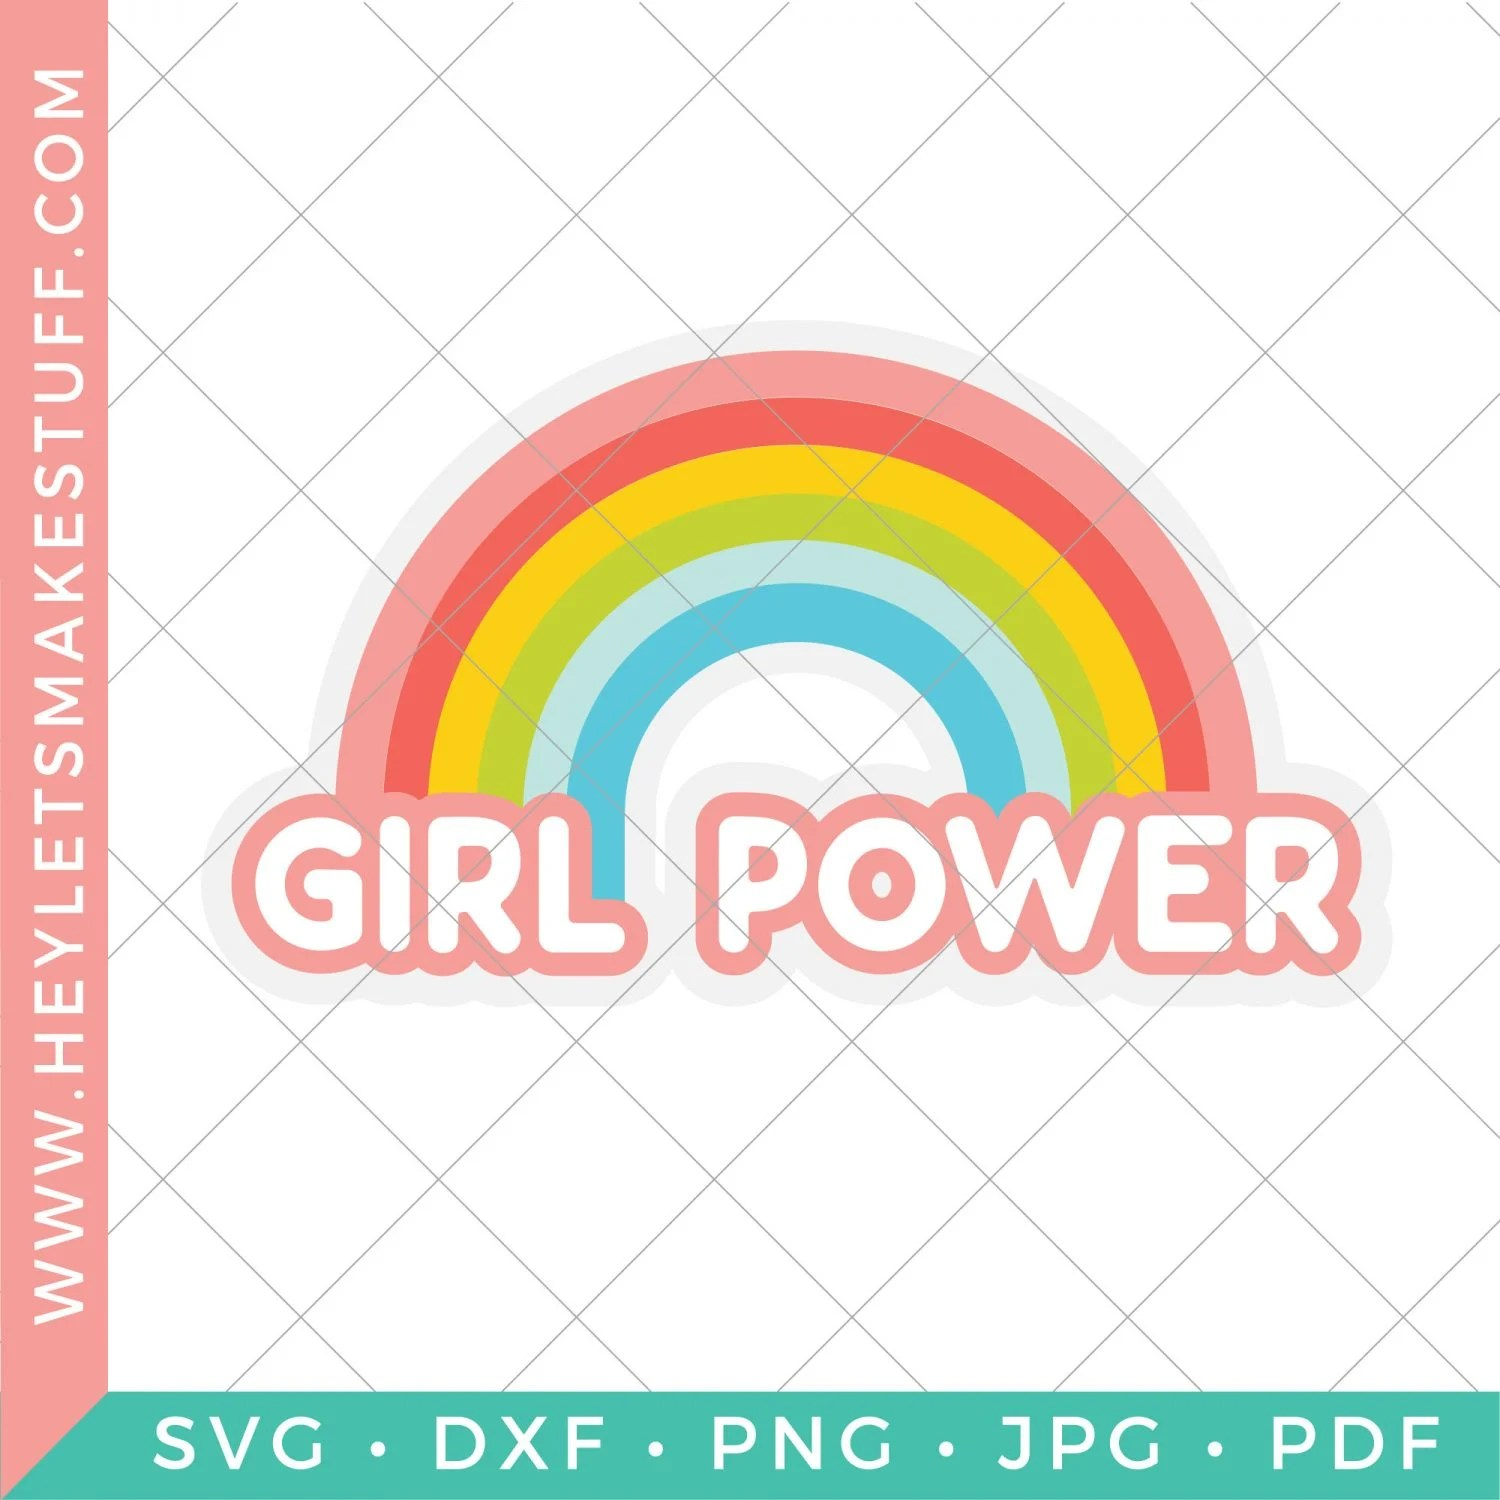 Girl Power security image for SVG